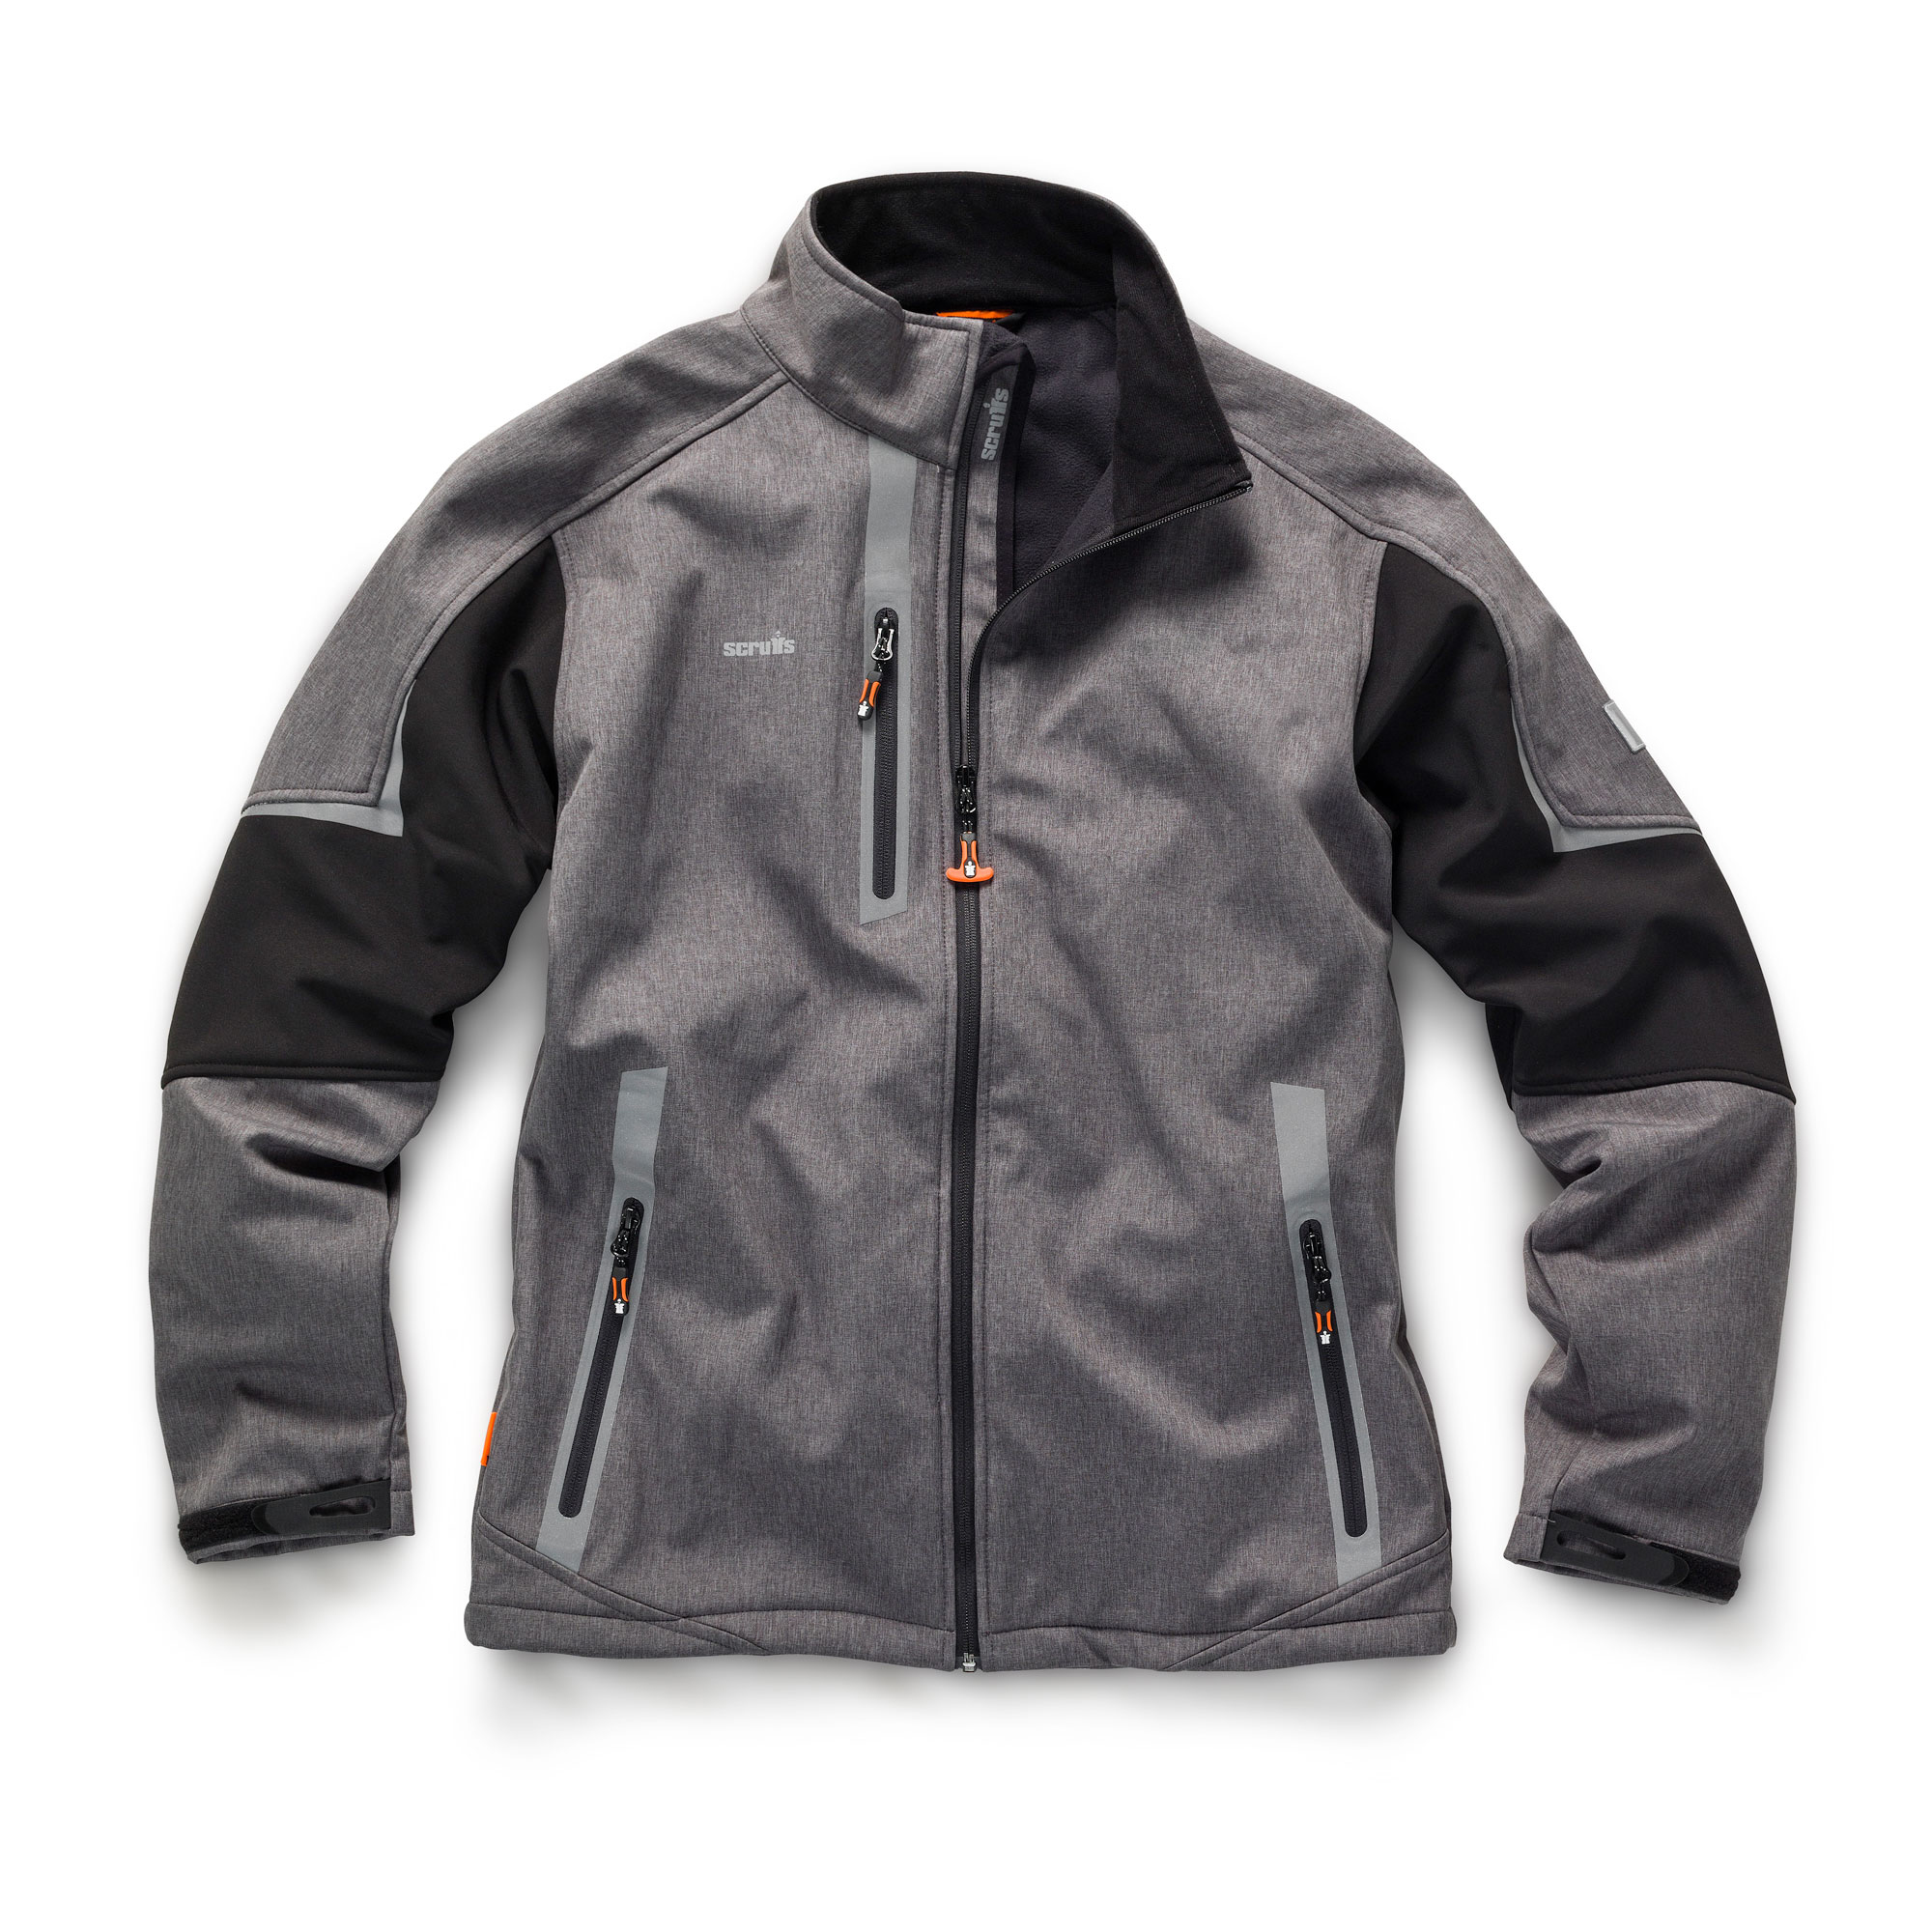 Charcoal polyester Scruffs pro softshell with orange zips and contrasting grey reflective detailing around pockets and shoulders